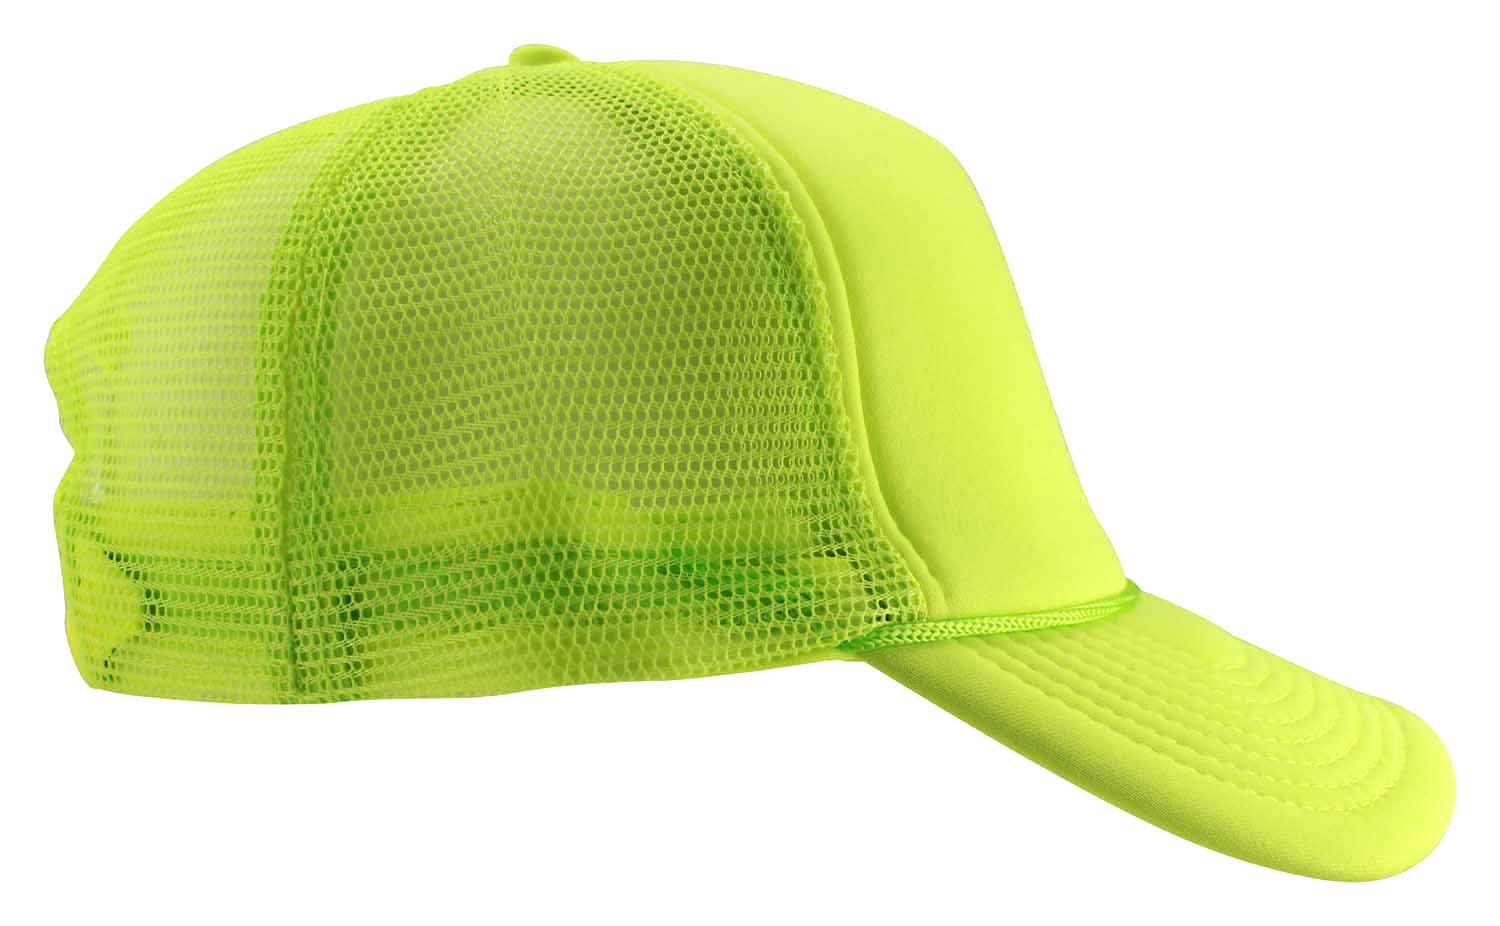 a2361a74f23 Trucker Style Foam Hats Bright Neon Colored Black Light Pool Party Rave  Summer Neon Yellow One Size - Walmart.com